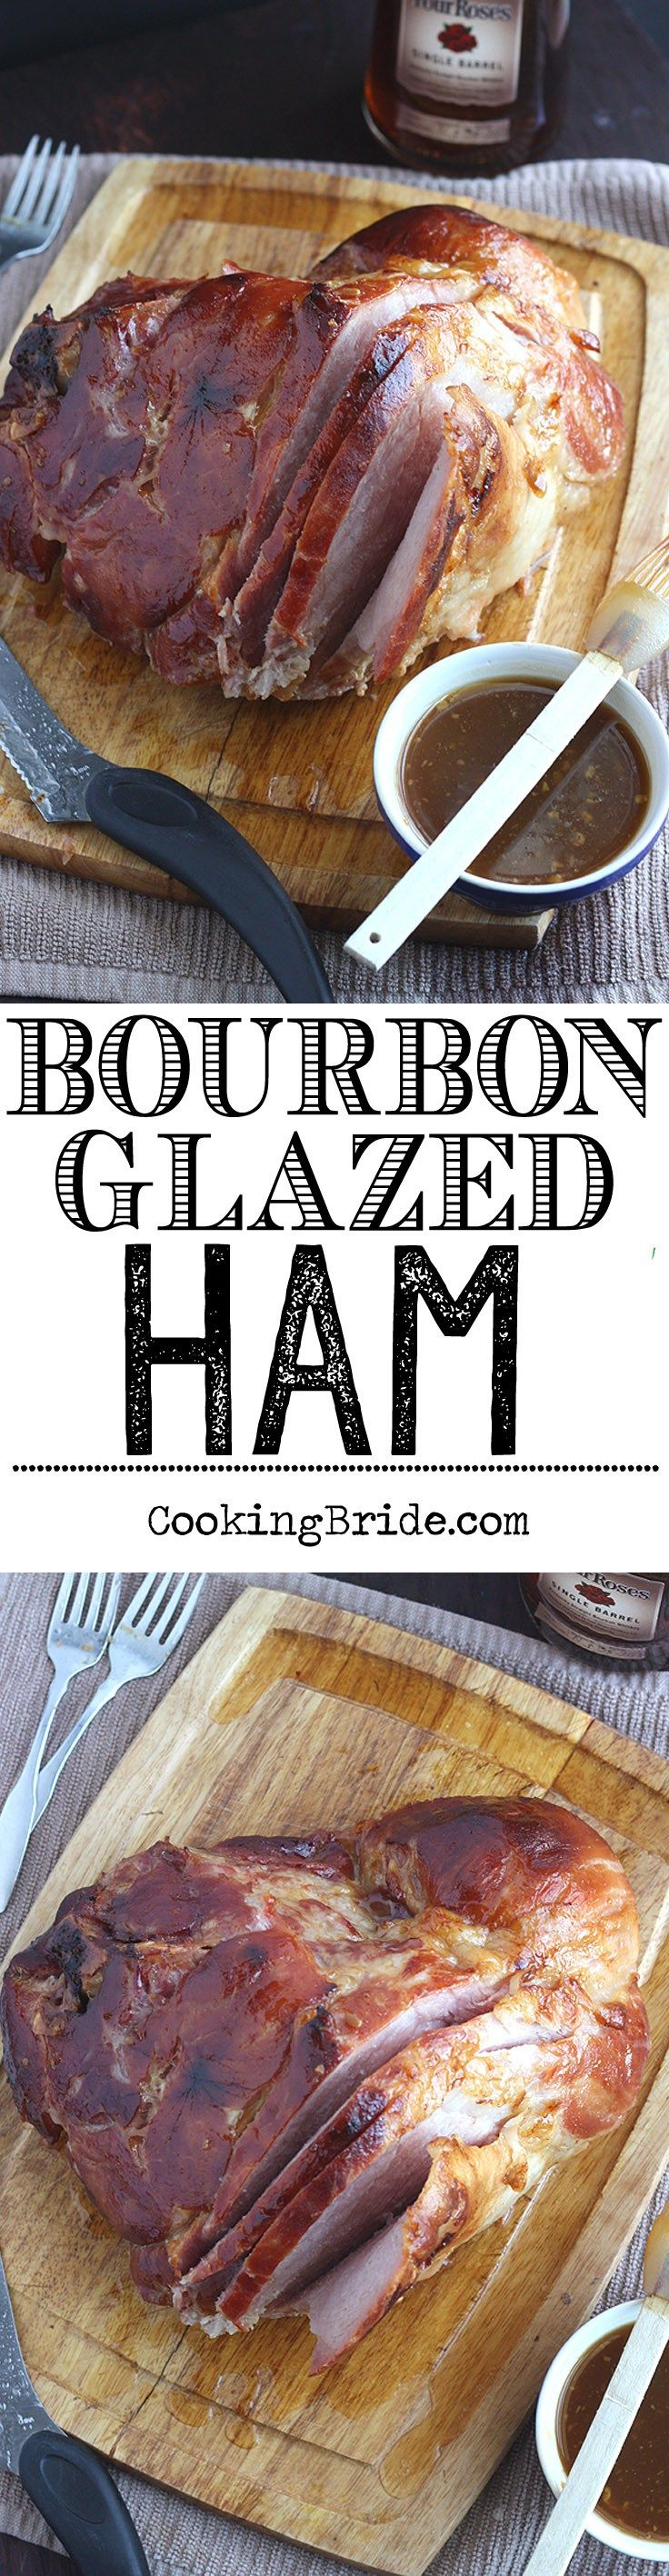 Bourbon glazed baked ham is slathered with a sweet glaze of bourbon, brown sugar, and orange juice. Perfect for the holidays!